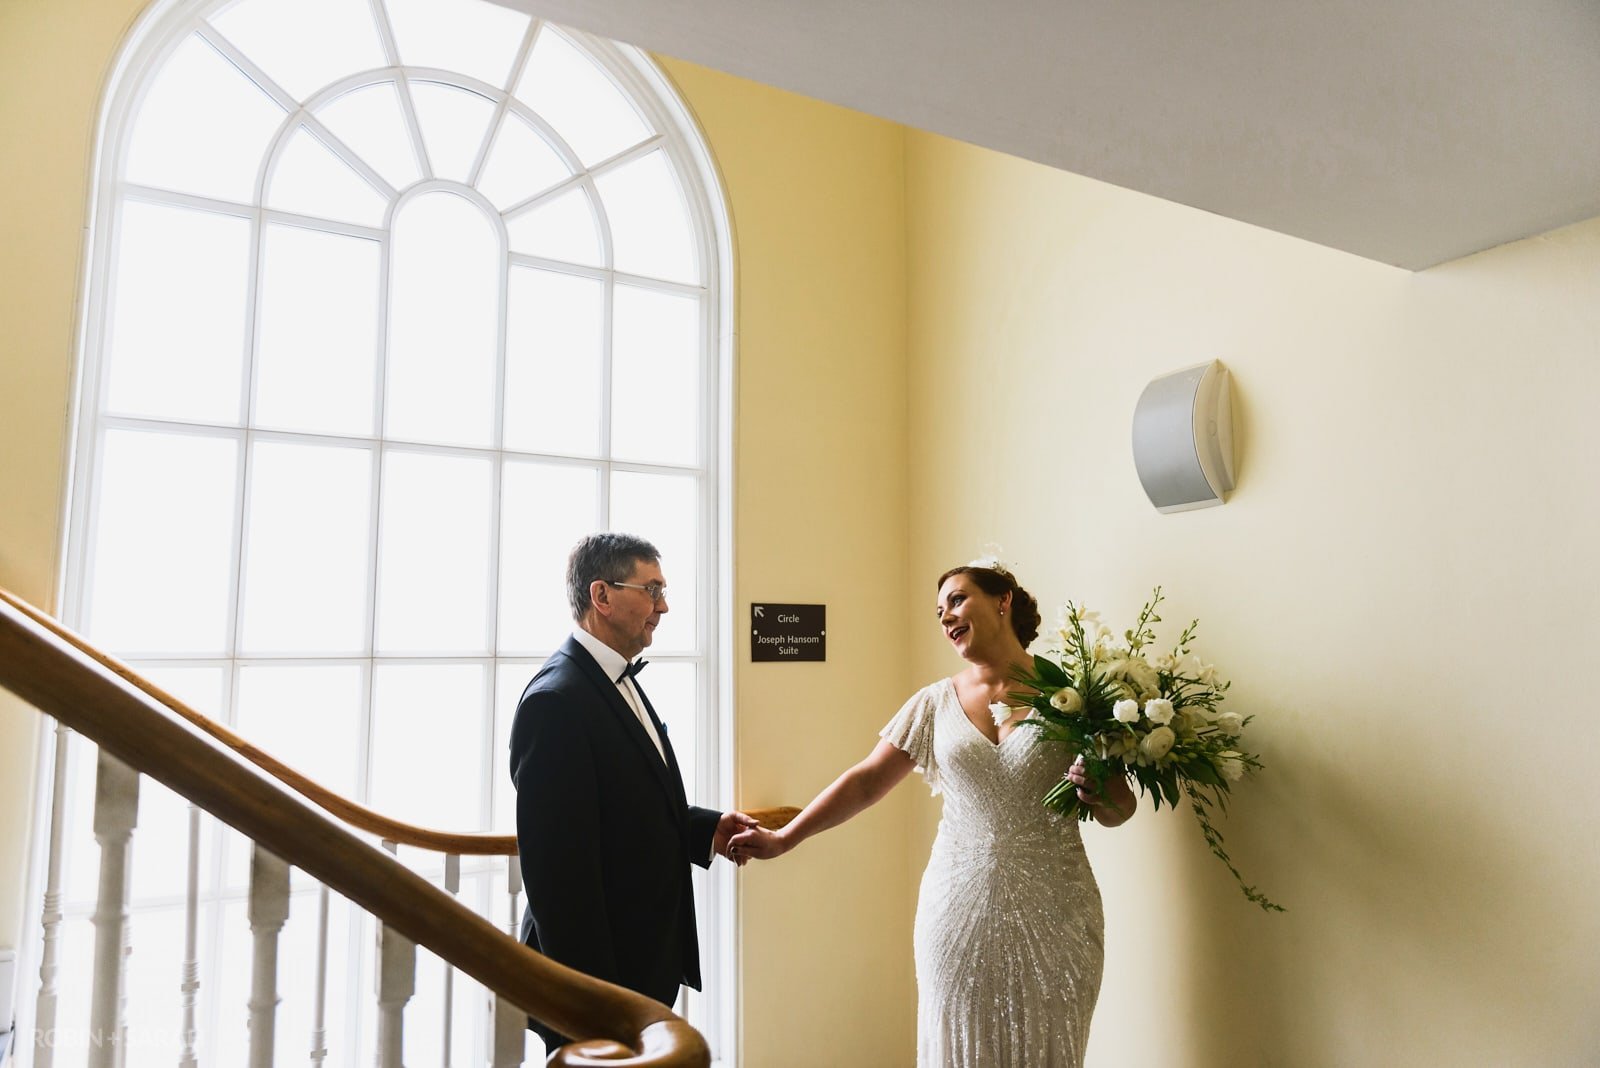 Dad sees his daughter ijn wedding dress for the first time in front of beautiful arched window